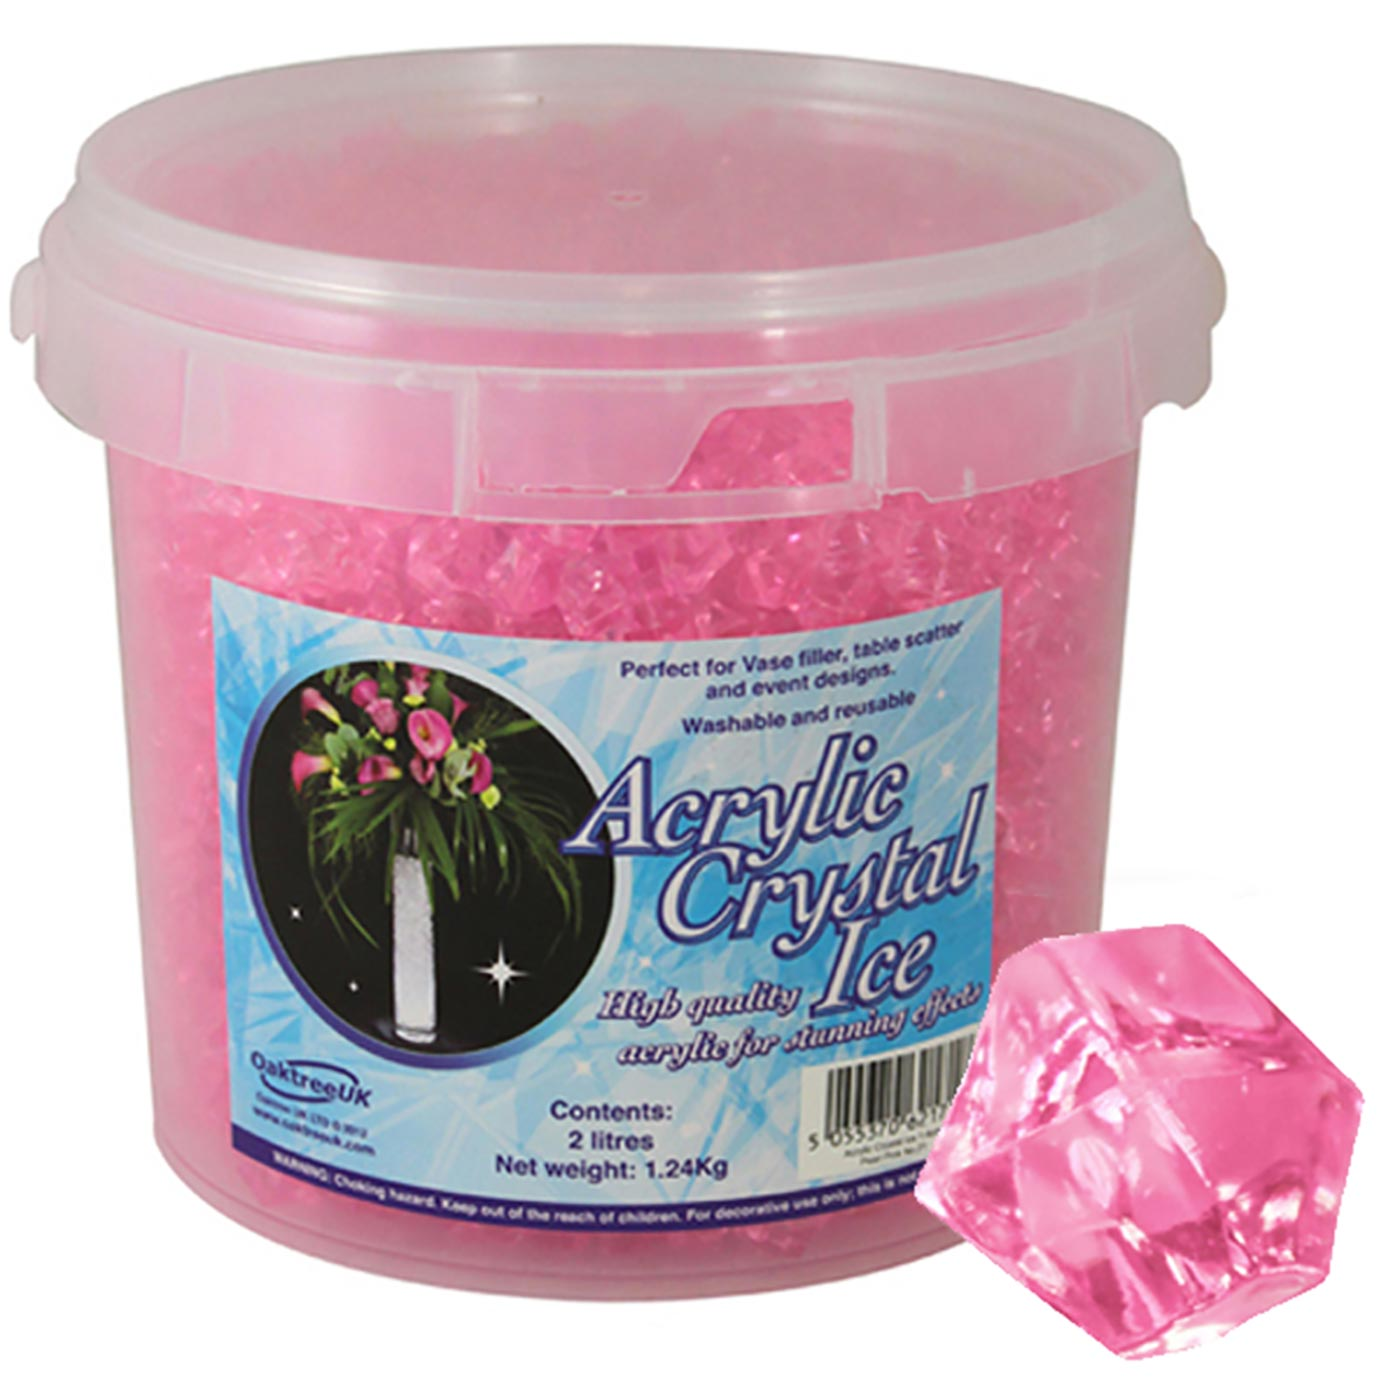 Acrylic Crystal Ice 1.4cm 2ltr 1.24Kg Pearl Pink